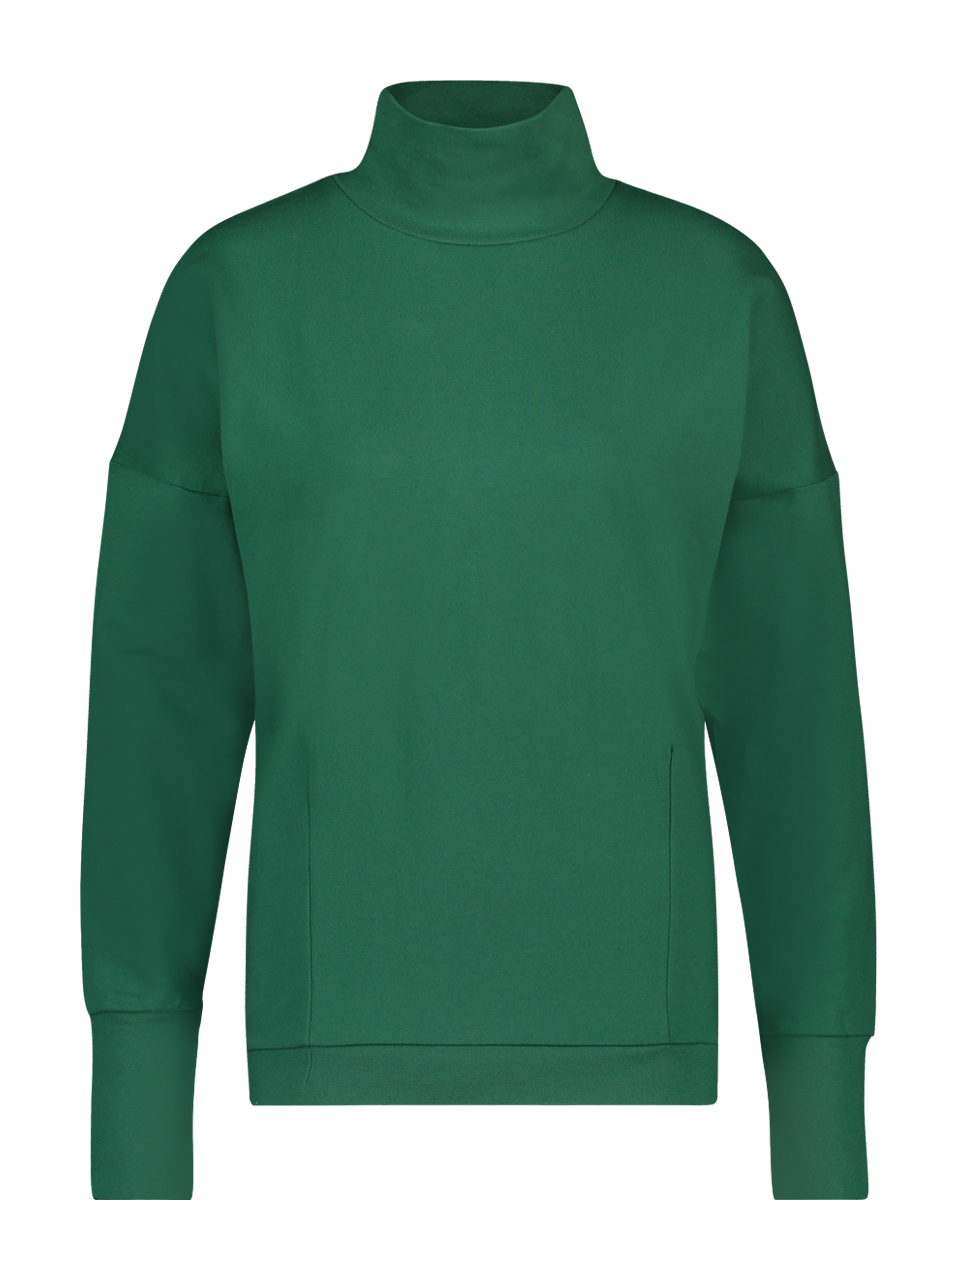 Sweater french knit - Green